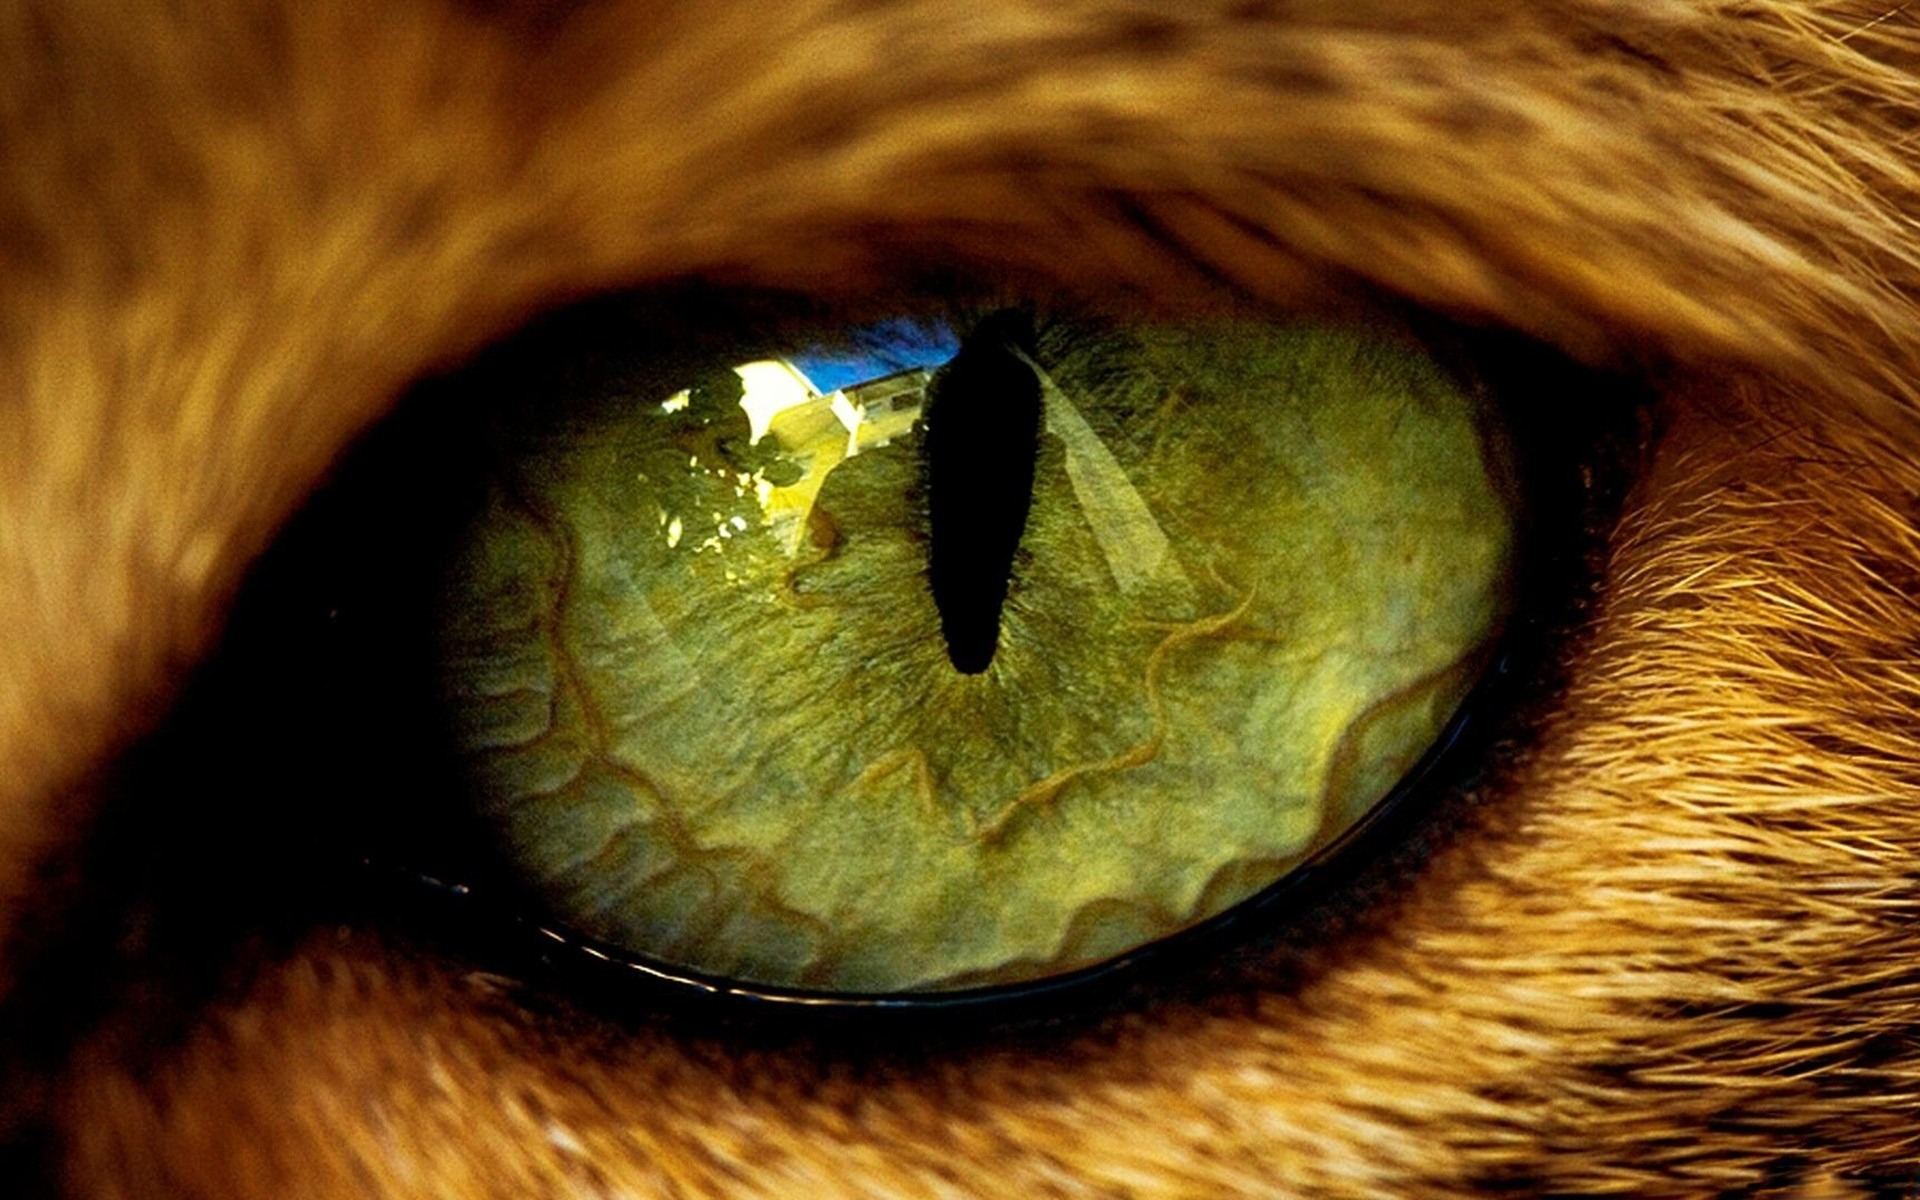 Animal Eye Pictures